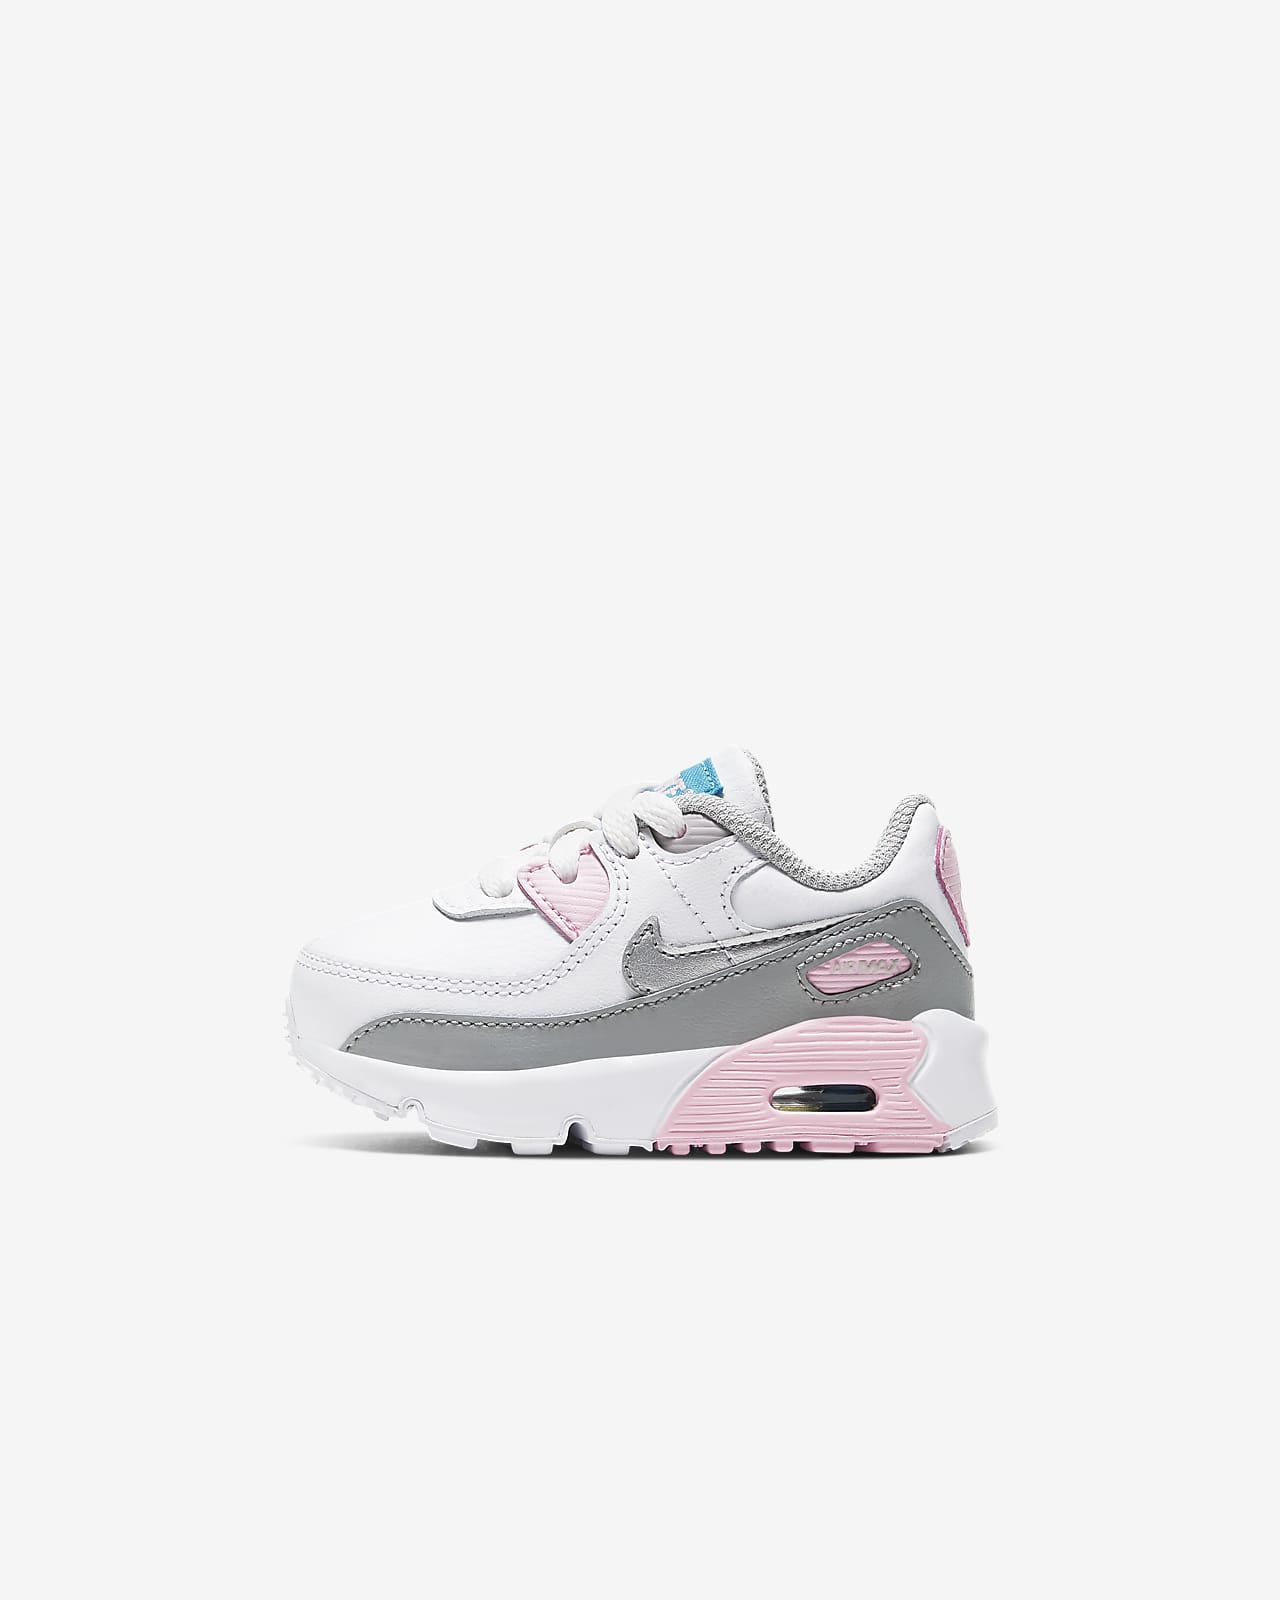 air max enfant fille blanche